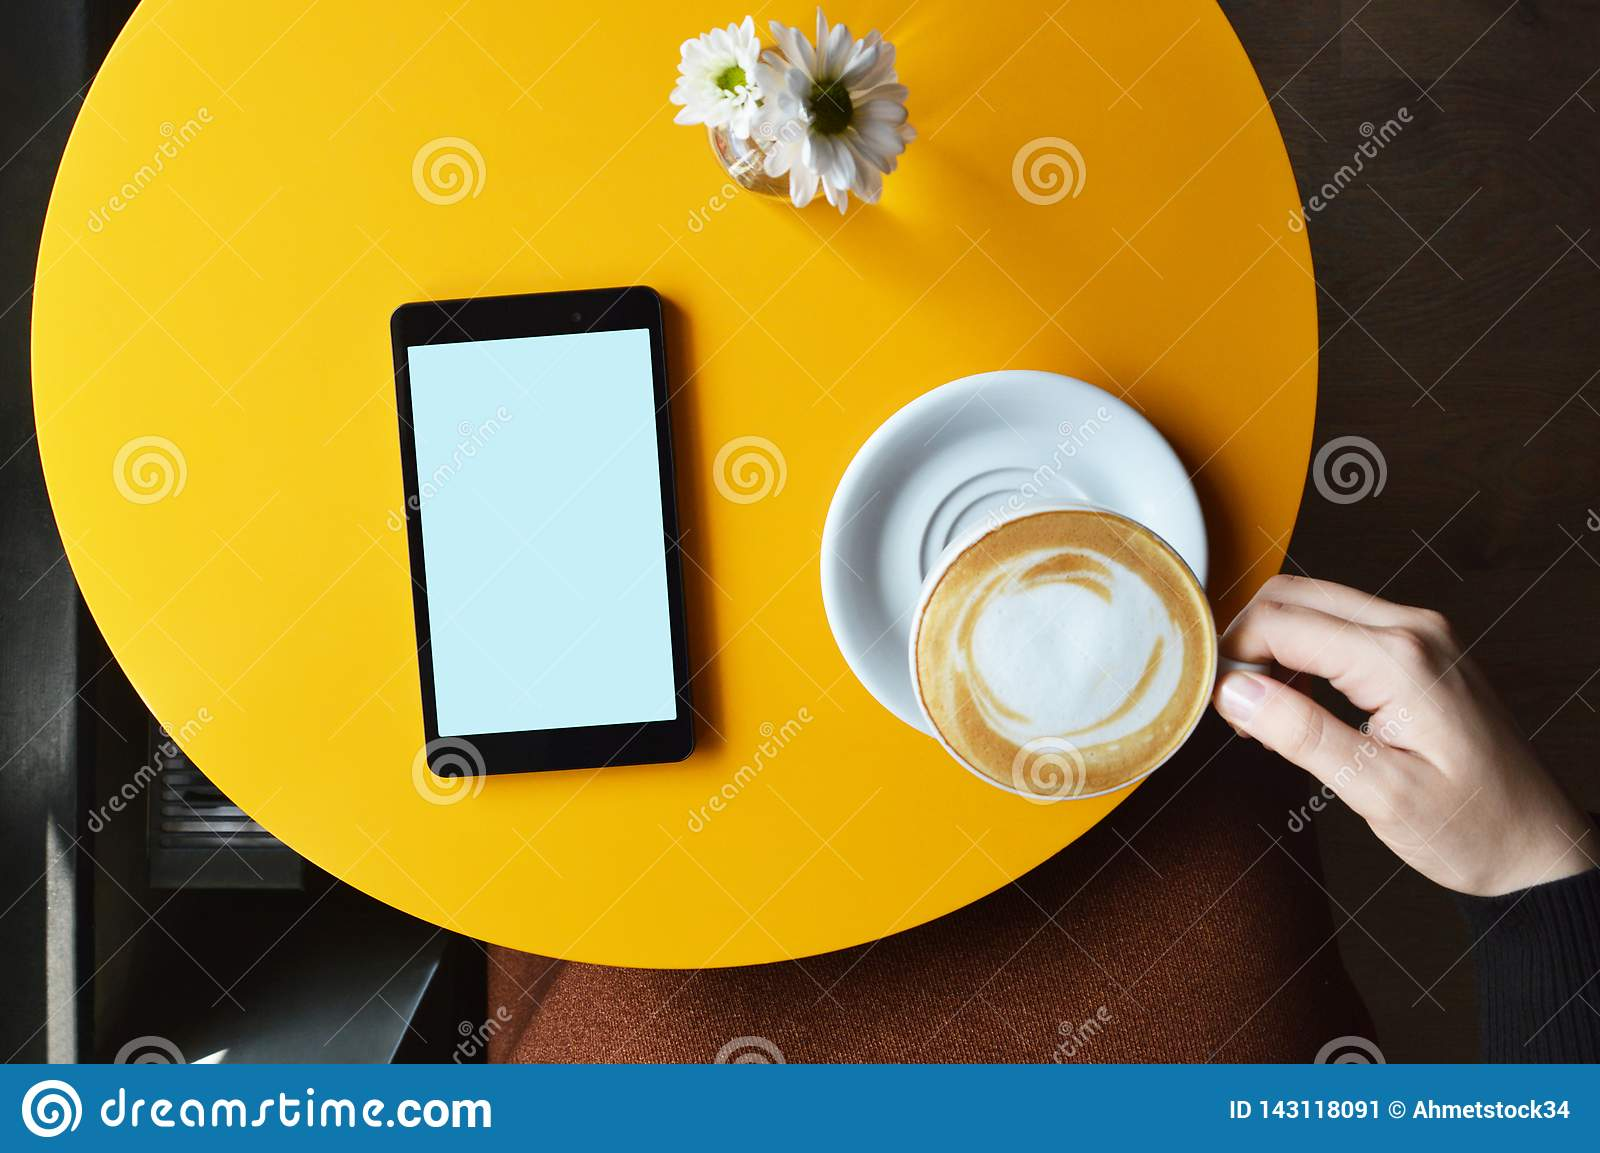 Digital tablet on top of cafe table and a woman hand holding cup of coffee